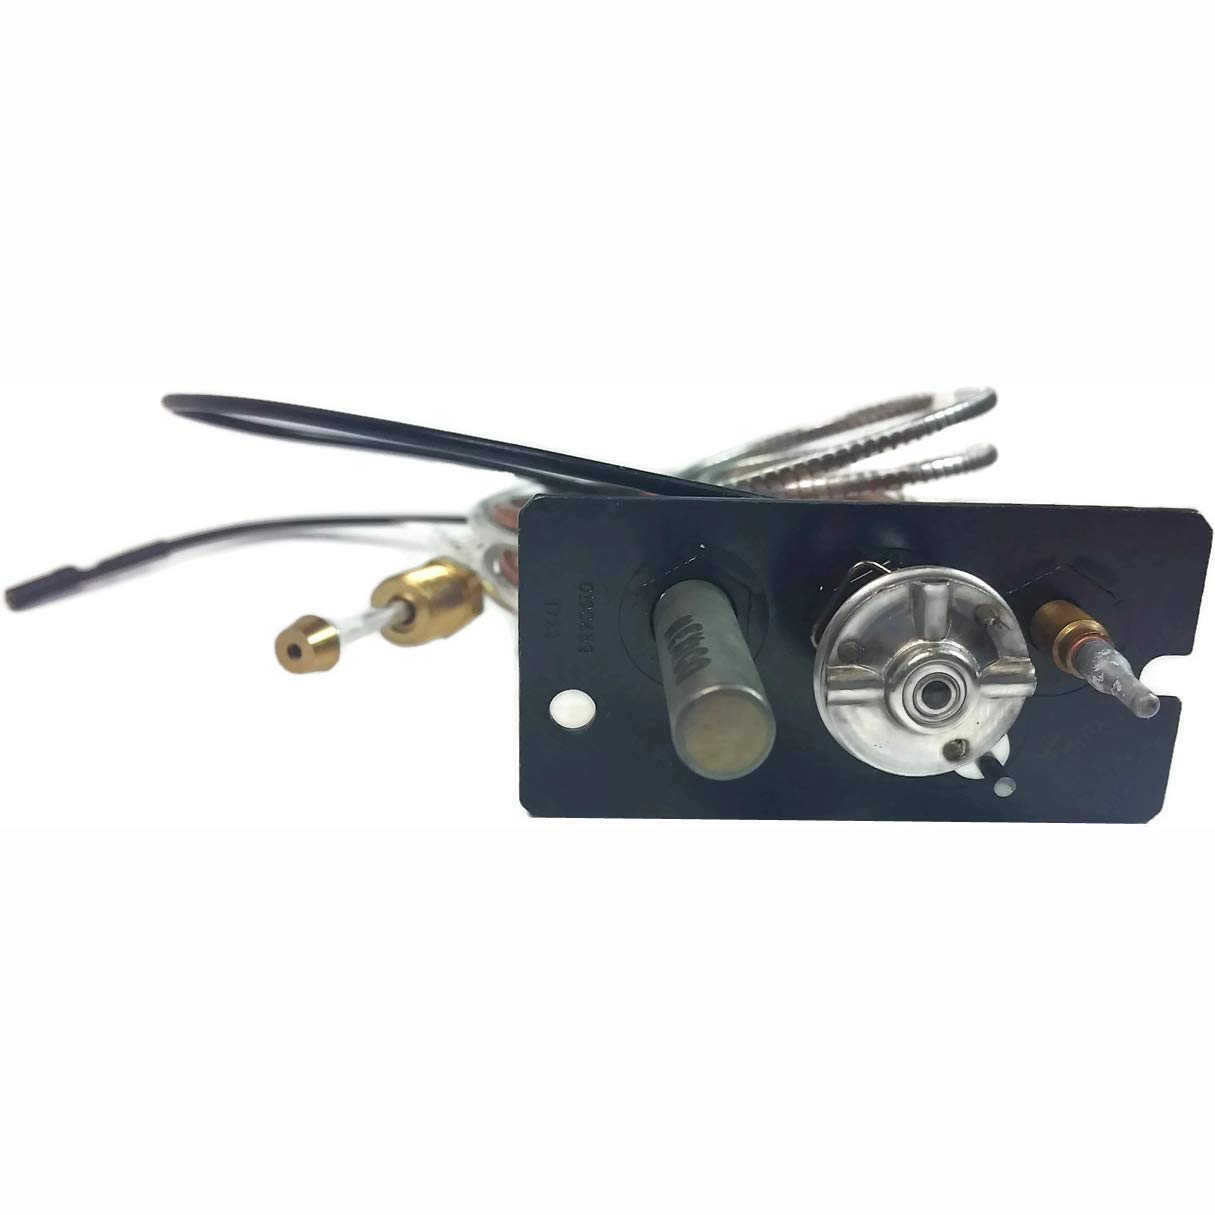 Majestic 10002264 Pilot Assembly Ng Fireplace Thermopile Wiring Diagram Get Free Image About Replacement Part By Fireplaces Home Kitchen